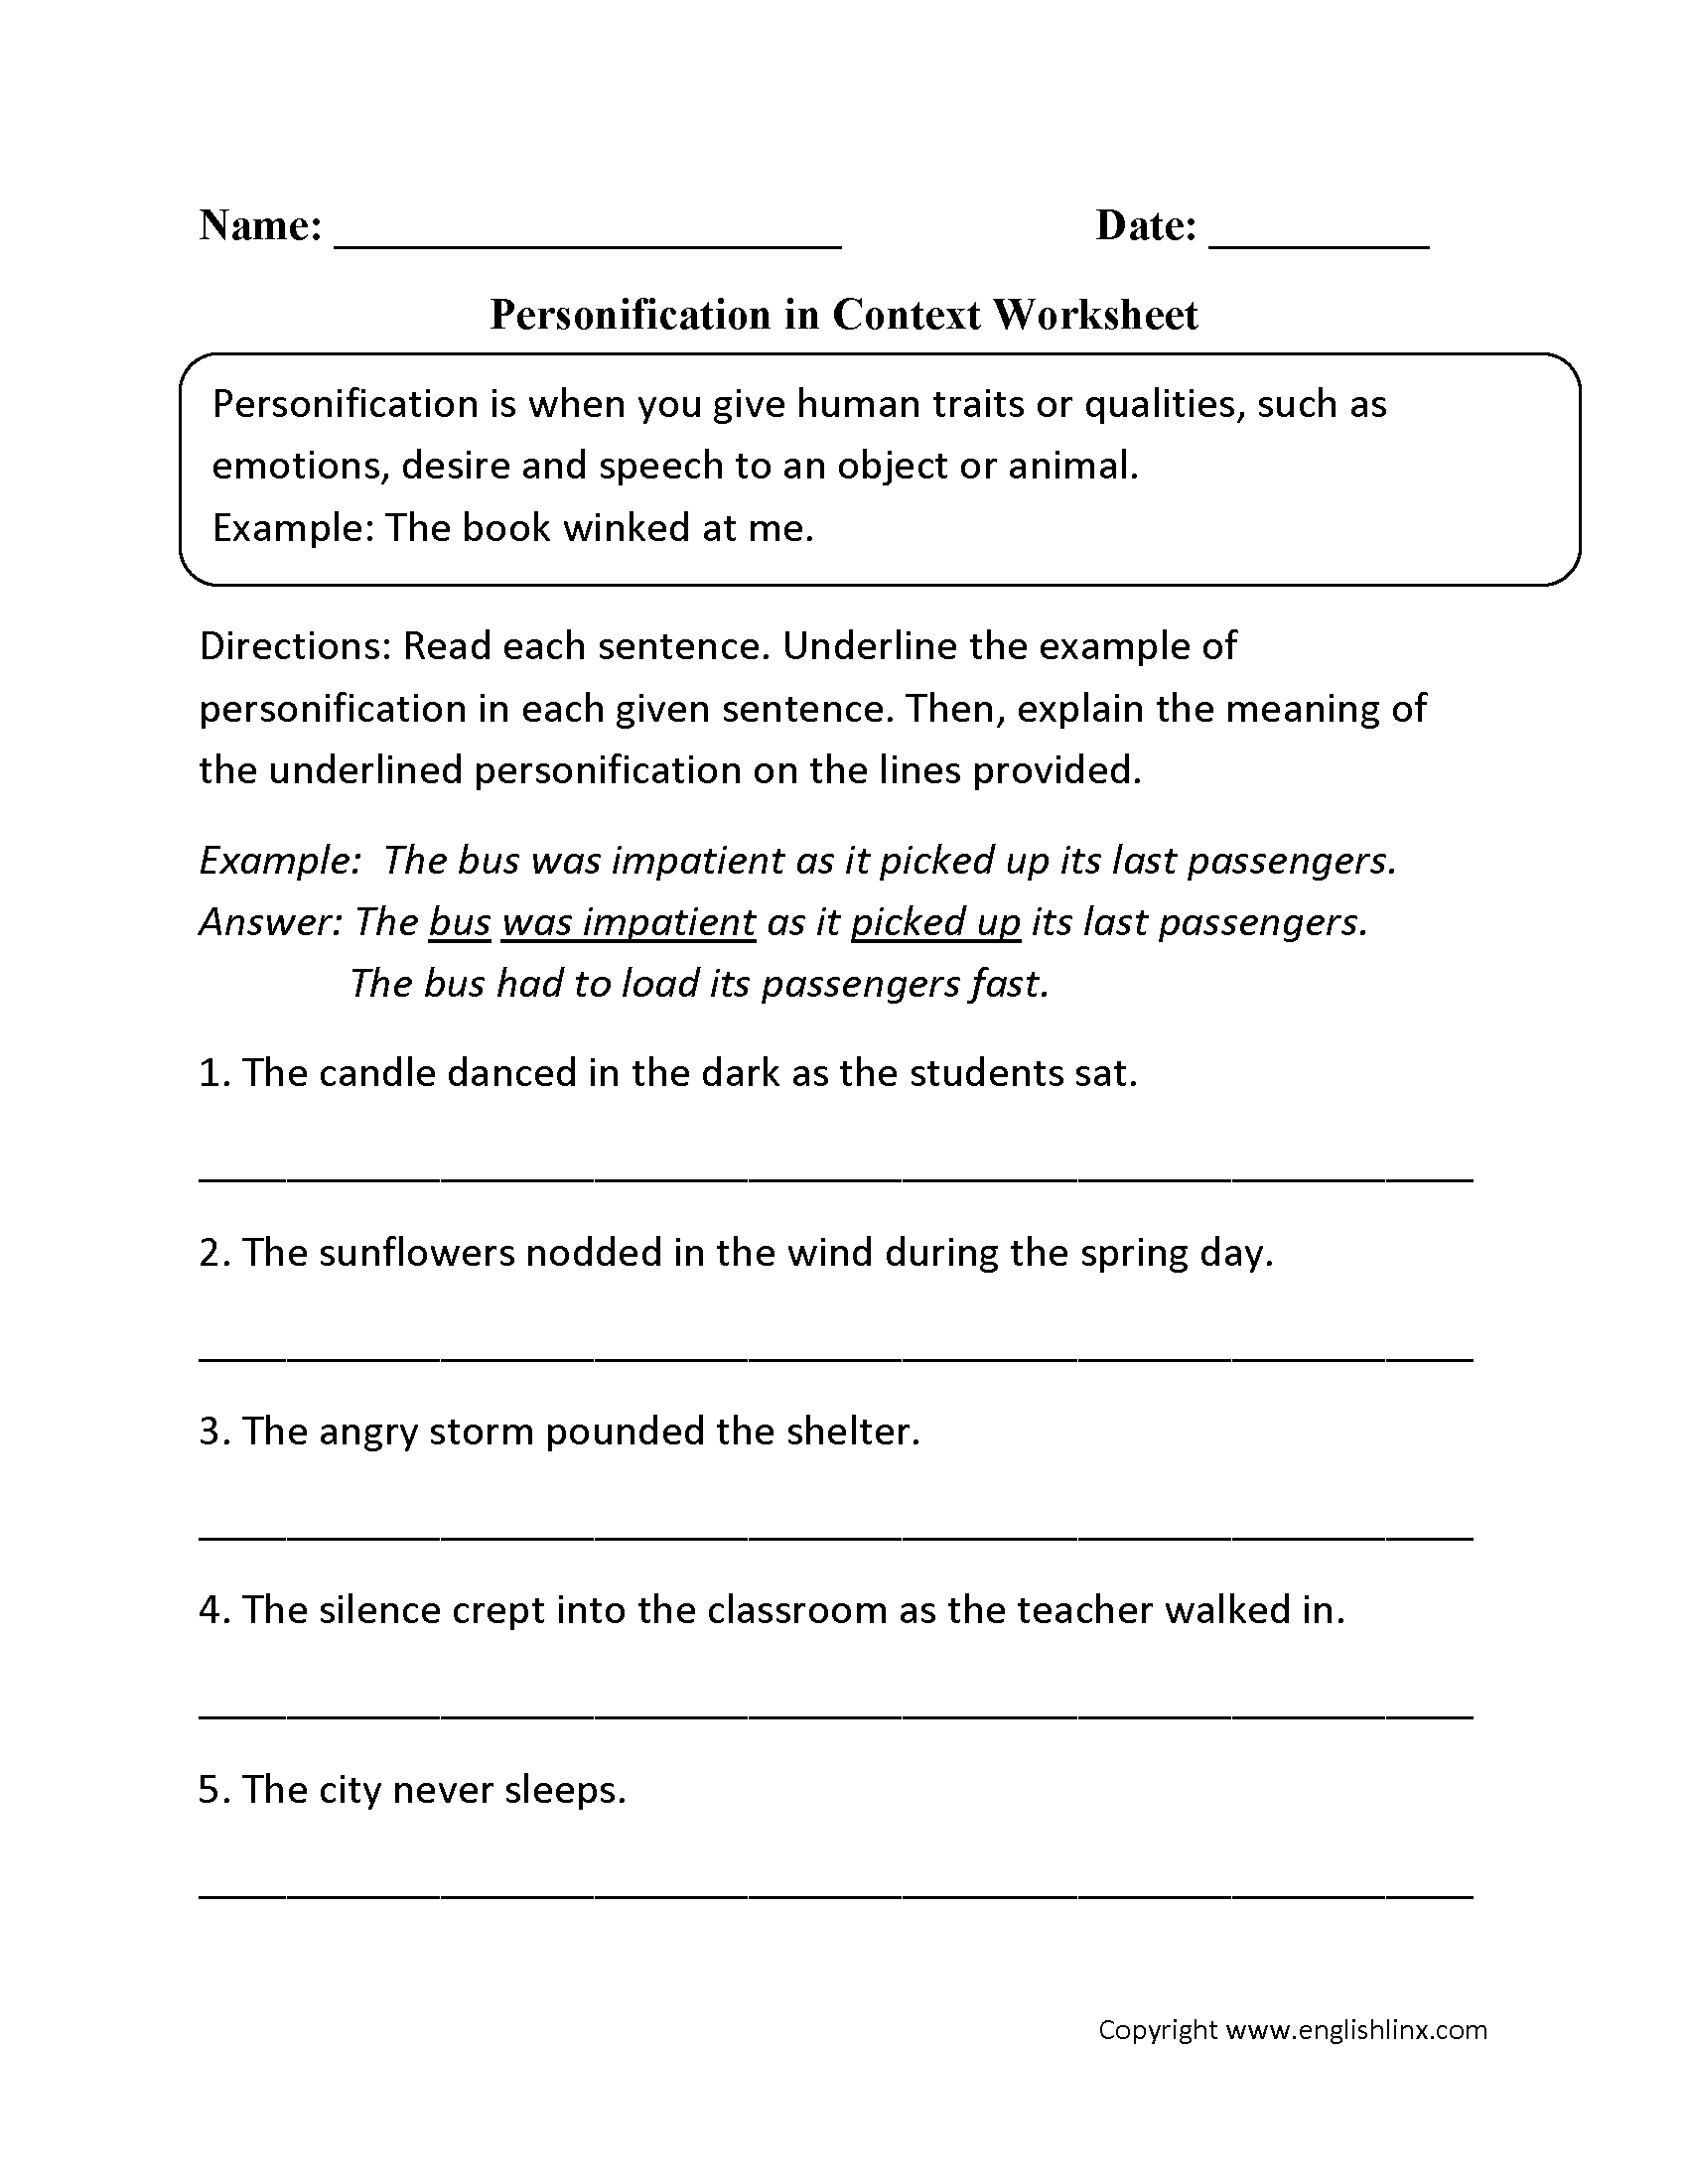 Content by Subject Worksheets – Identifying Irony Worksheet Answers